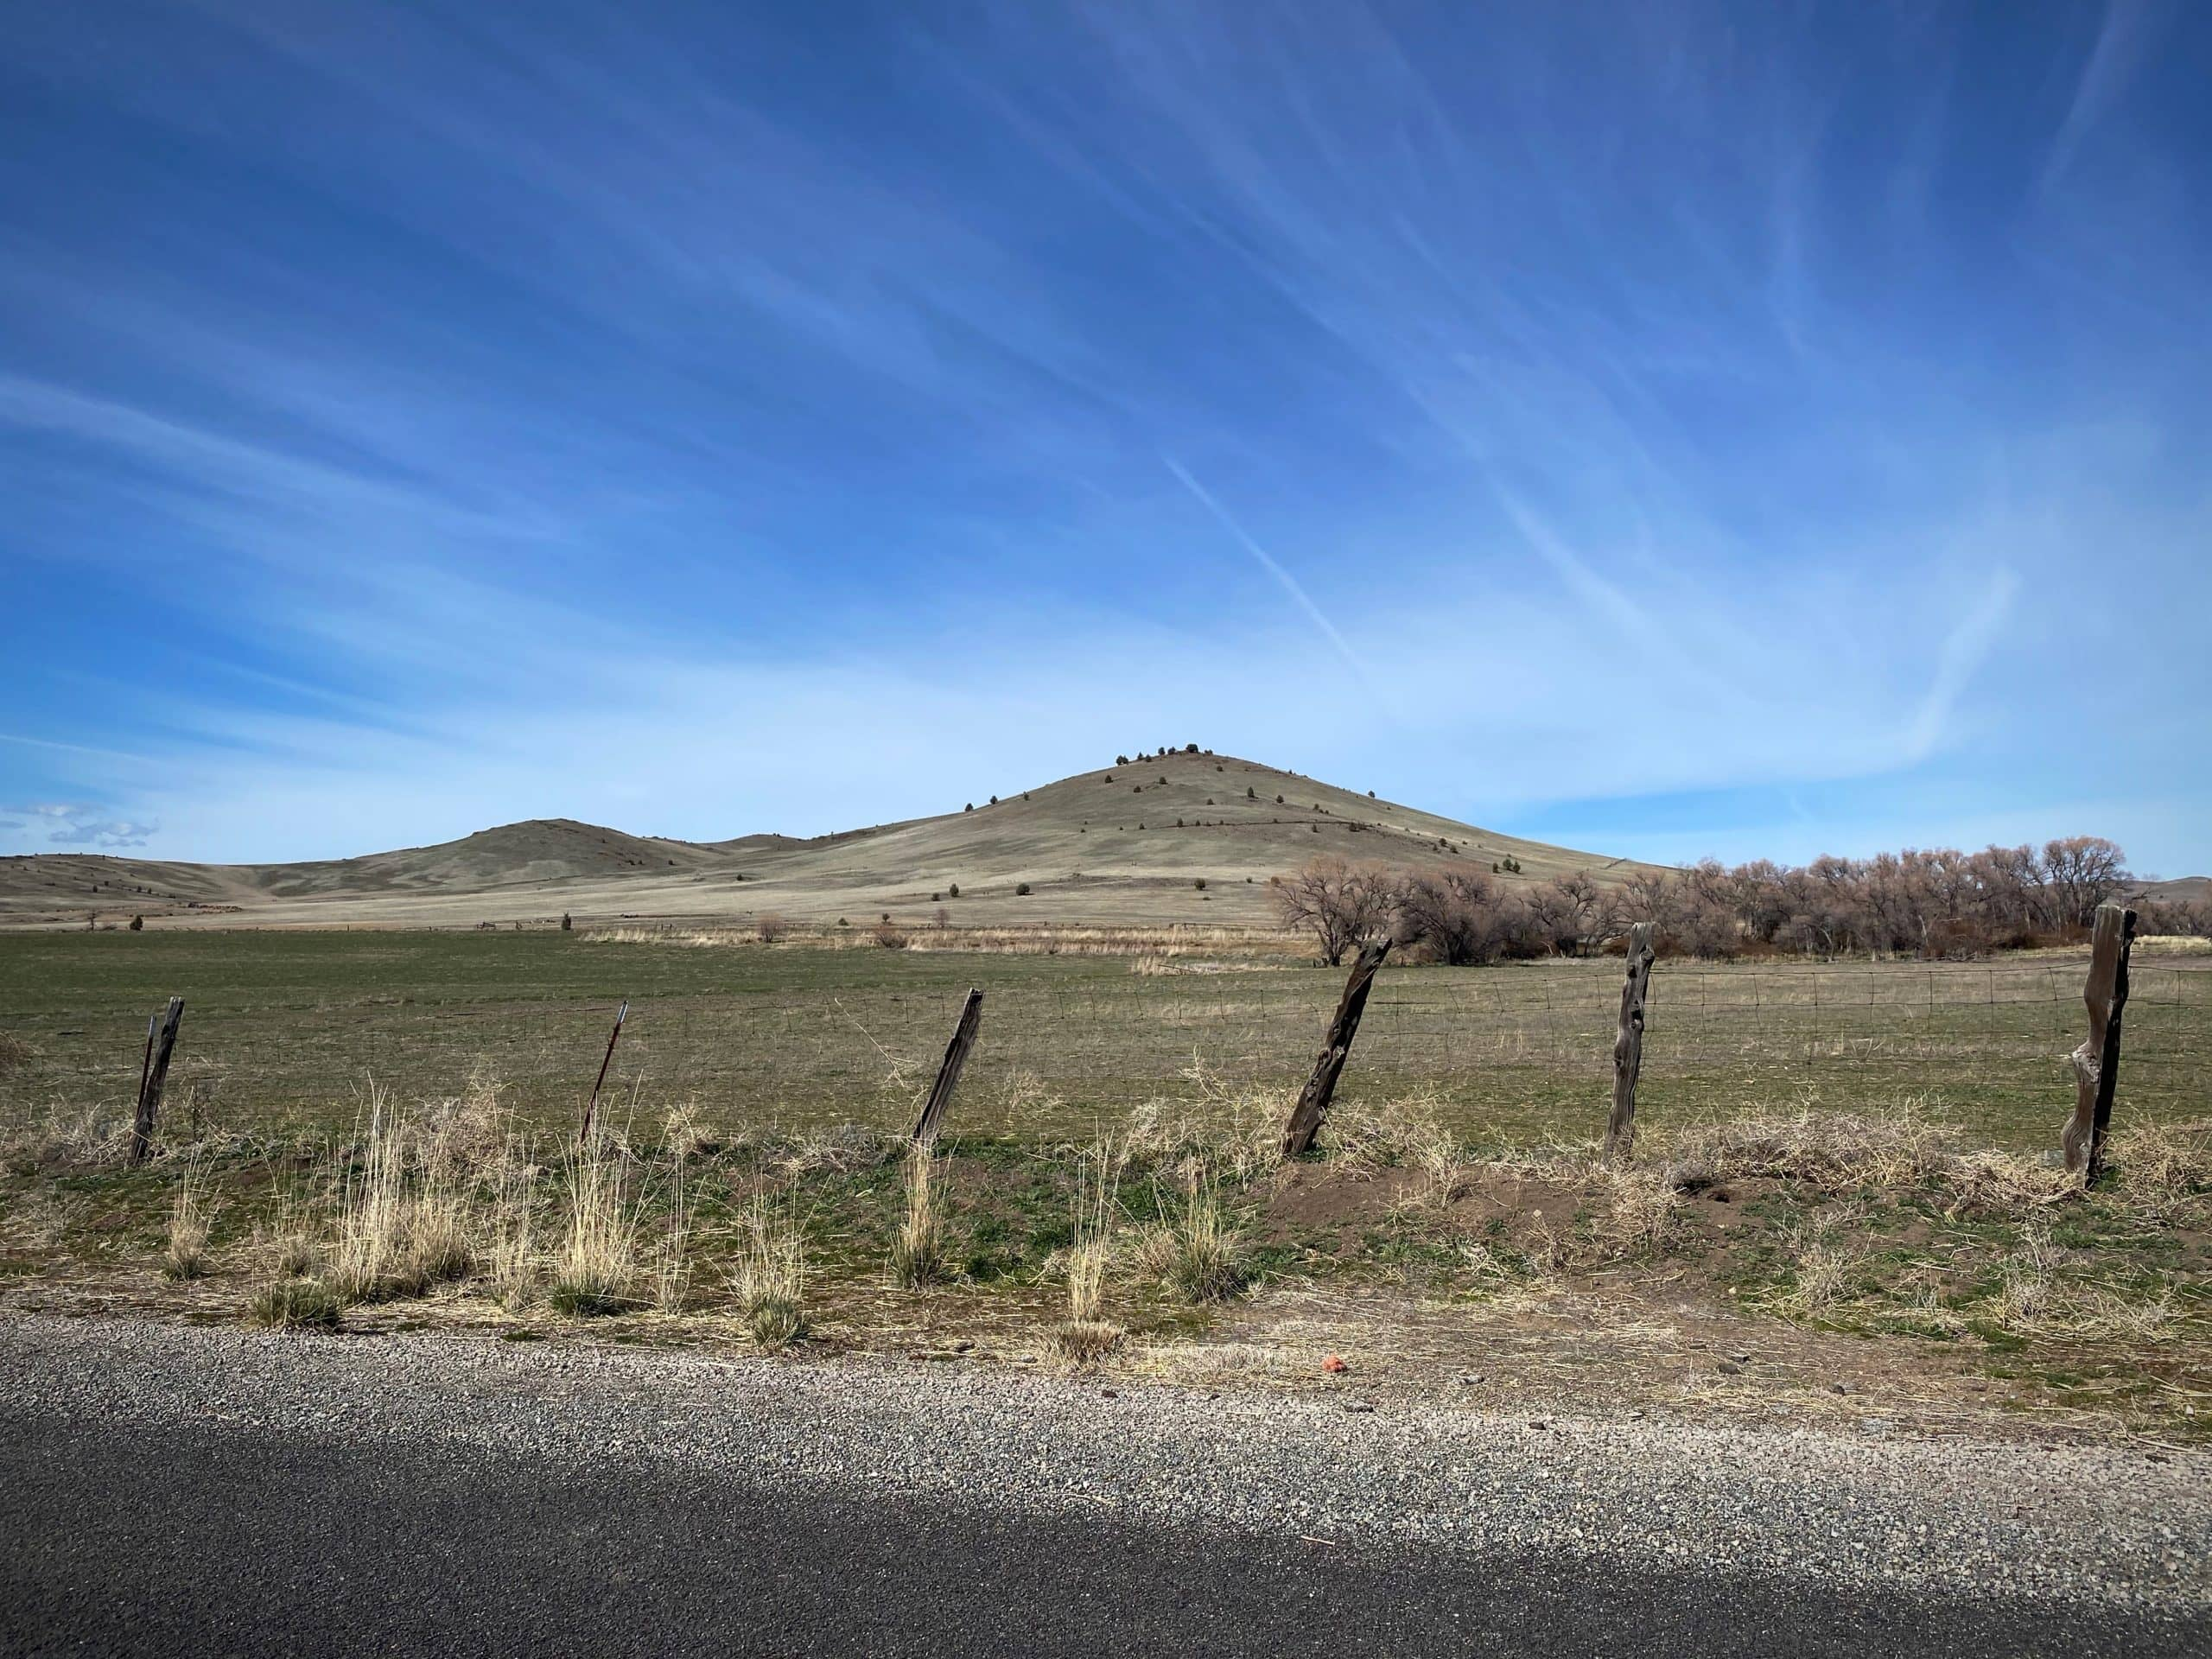 Fence posts. Butte. Farming field. Northern California.